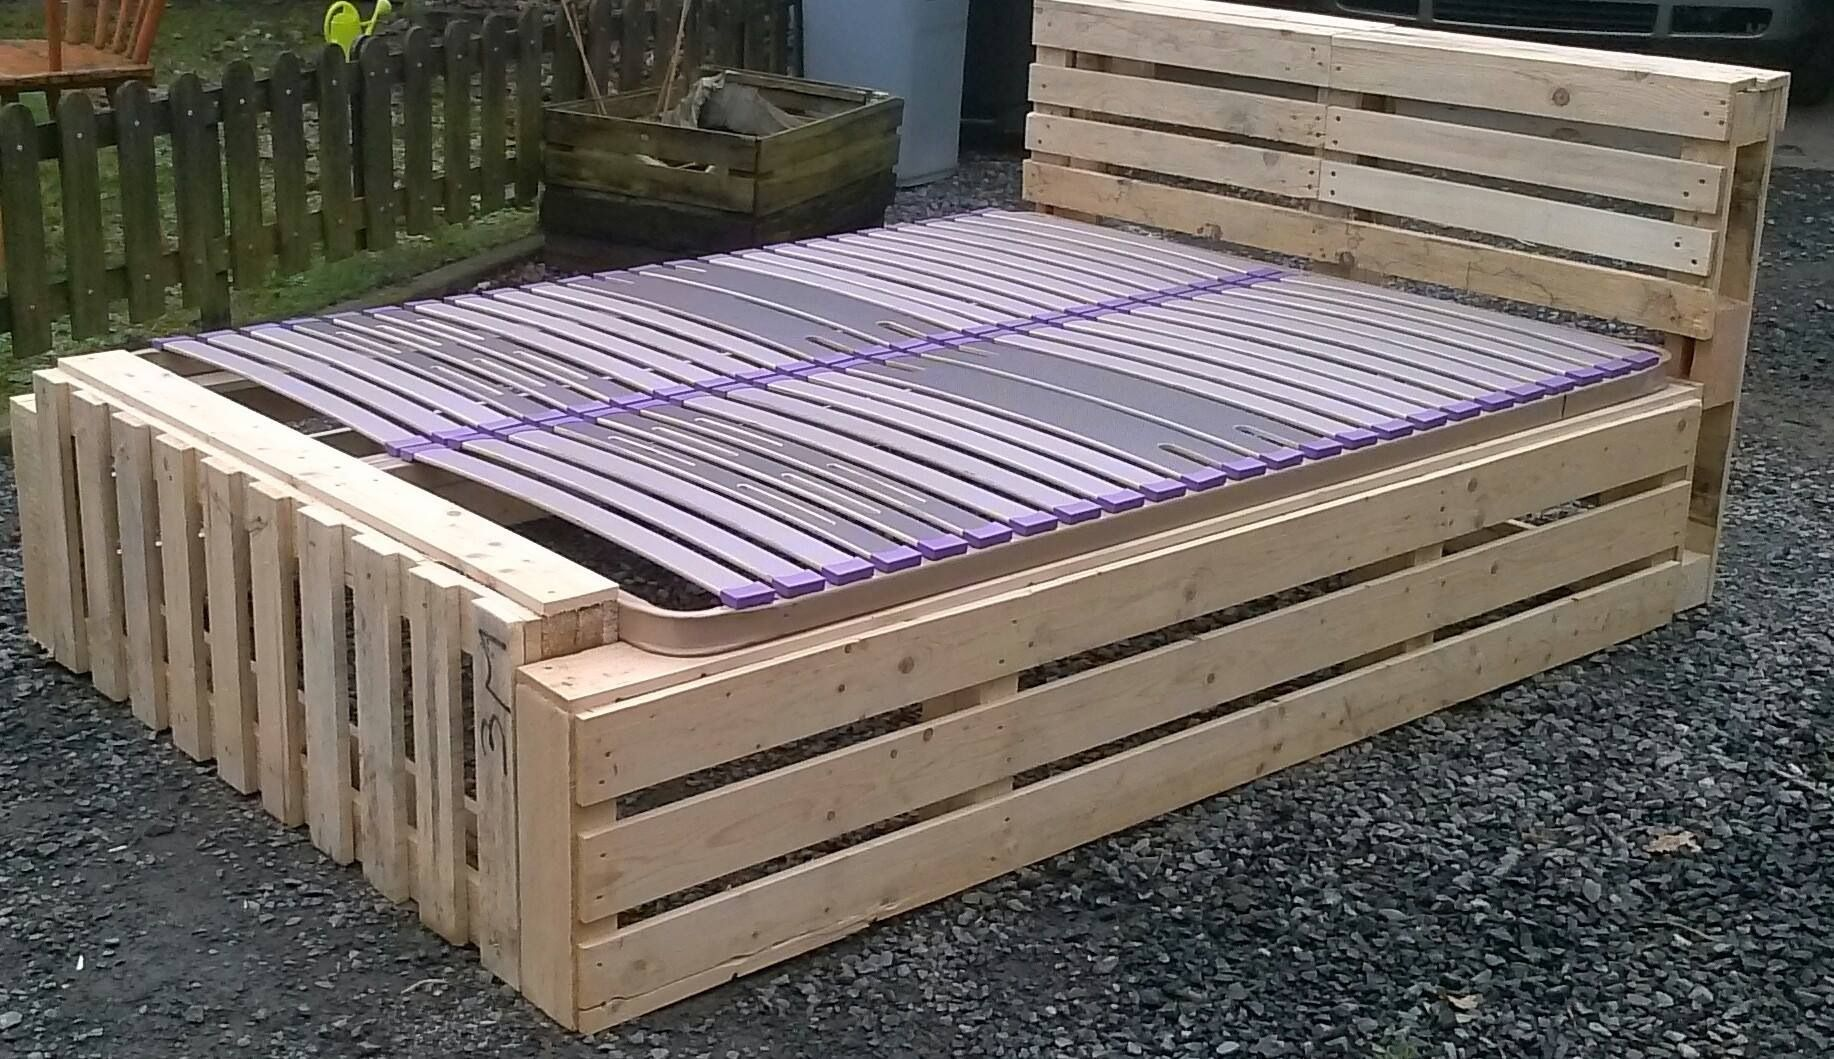 Diy pallet bedroom furniture lit en palettes  palettes et bobines  pinterest